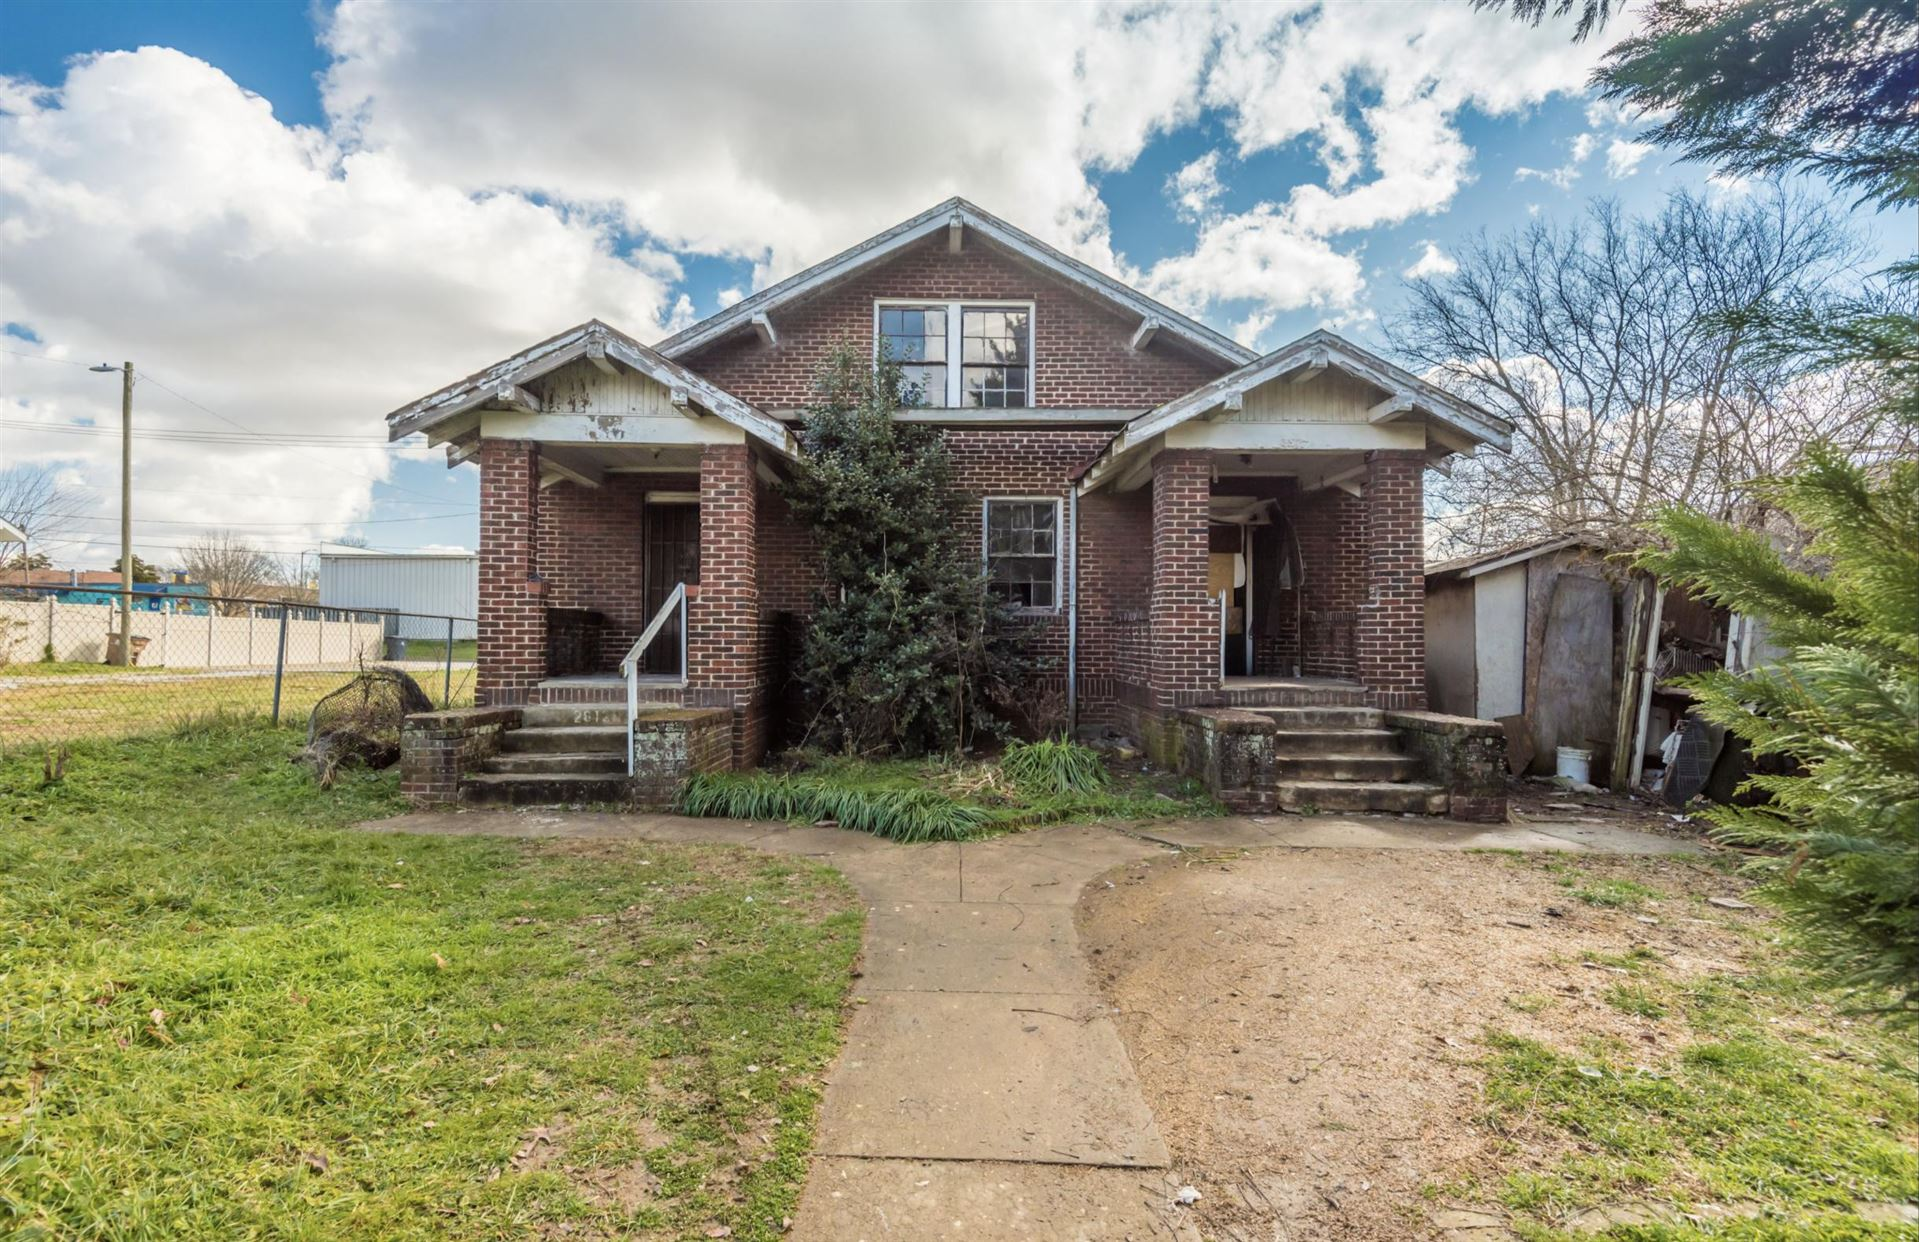 Photo of 2810 E 5th Ave, Knoxville, TN 37914 (MLS # 1140186)